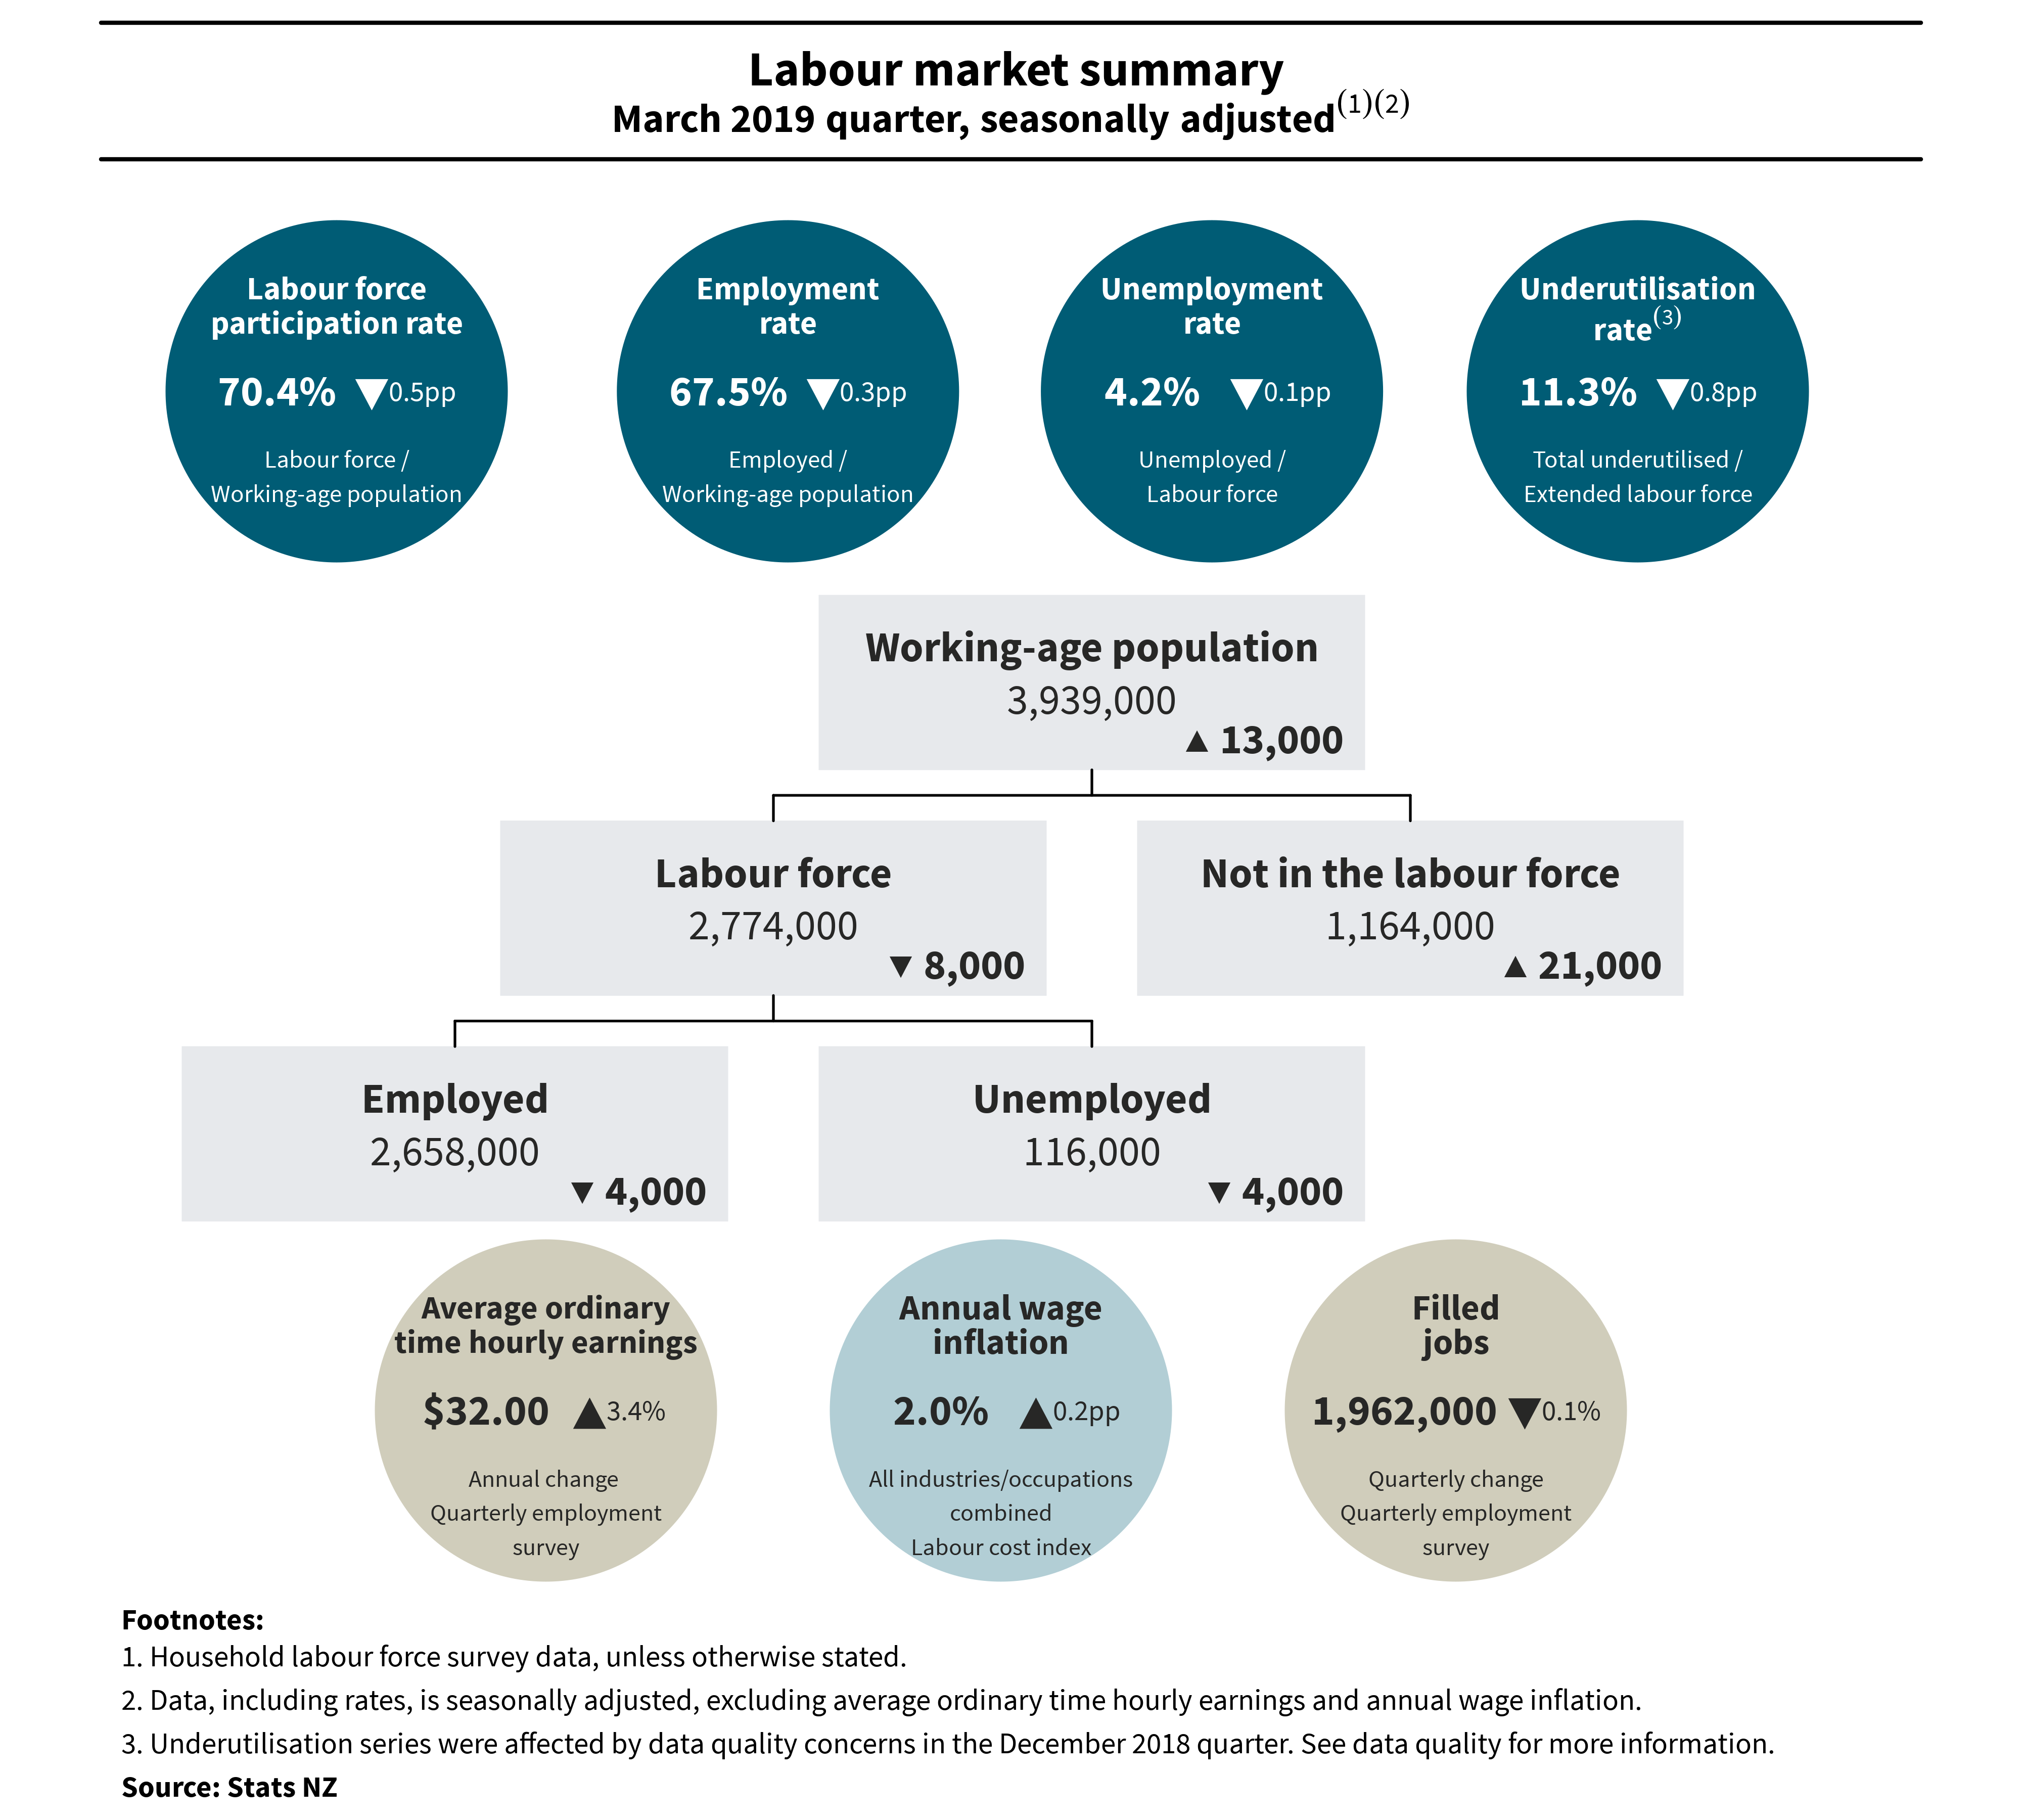 Diagram shows labour market summary, March 2019 quarter, seasonally adjusted